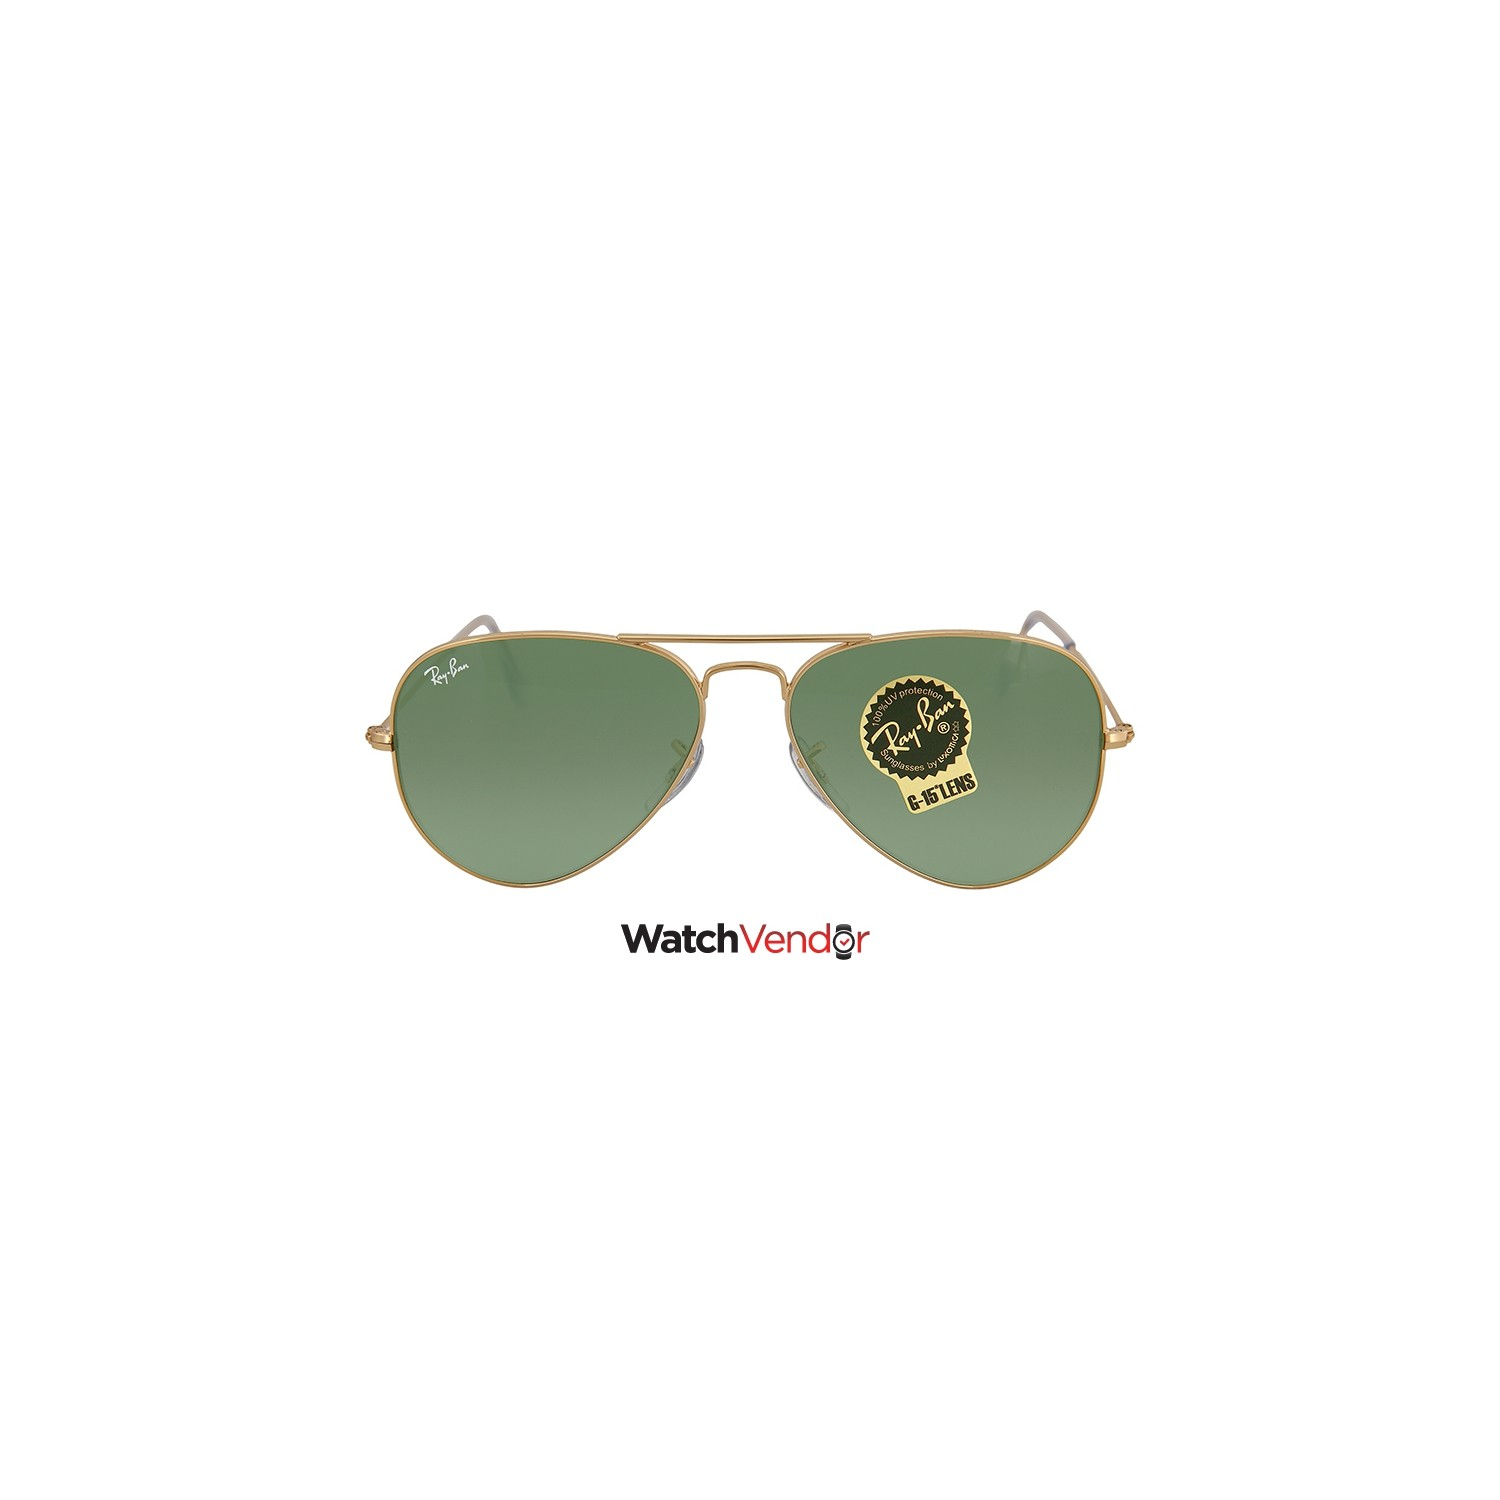 23406c9779 Ray Ban Aviator Arista Green 55 mm Sunglasses RB3025 W3234 55-14 - Online  Only